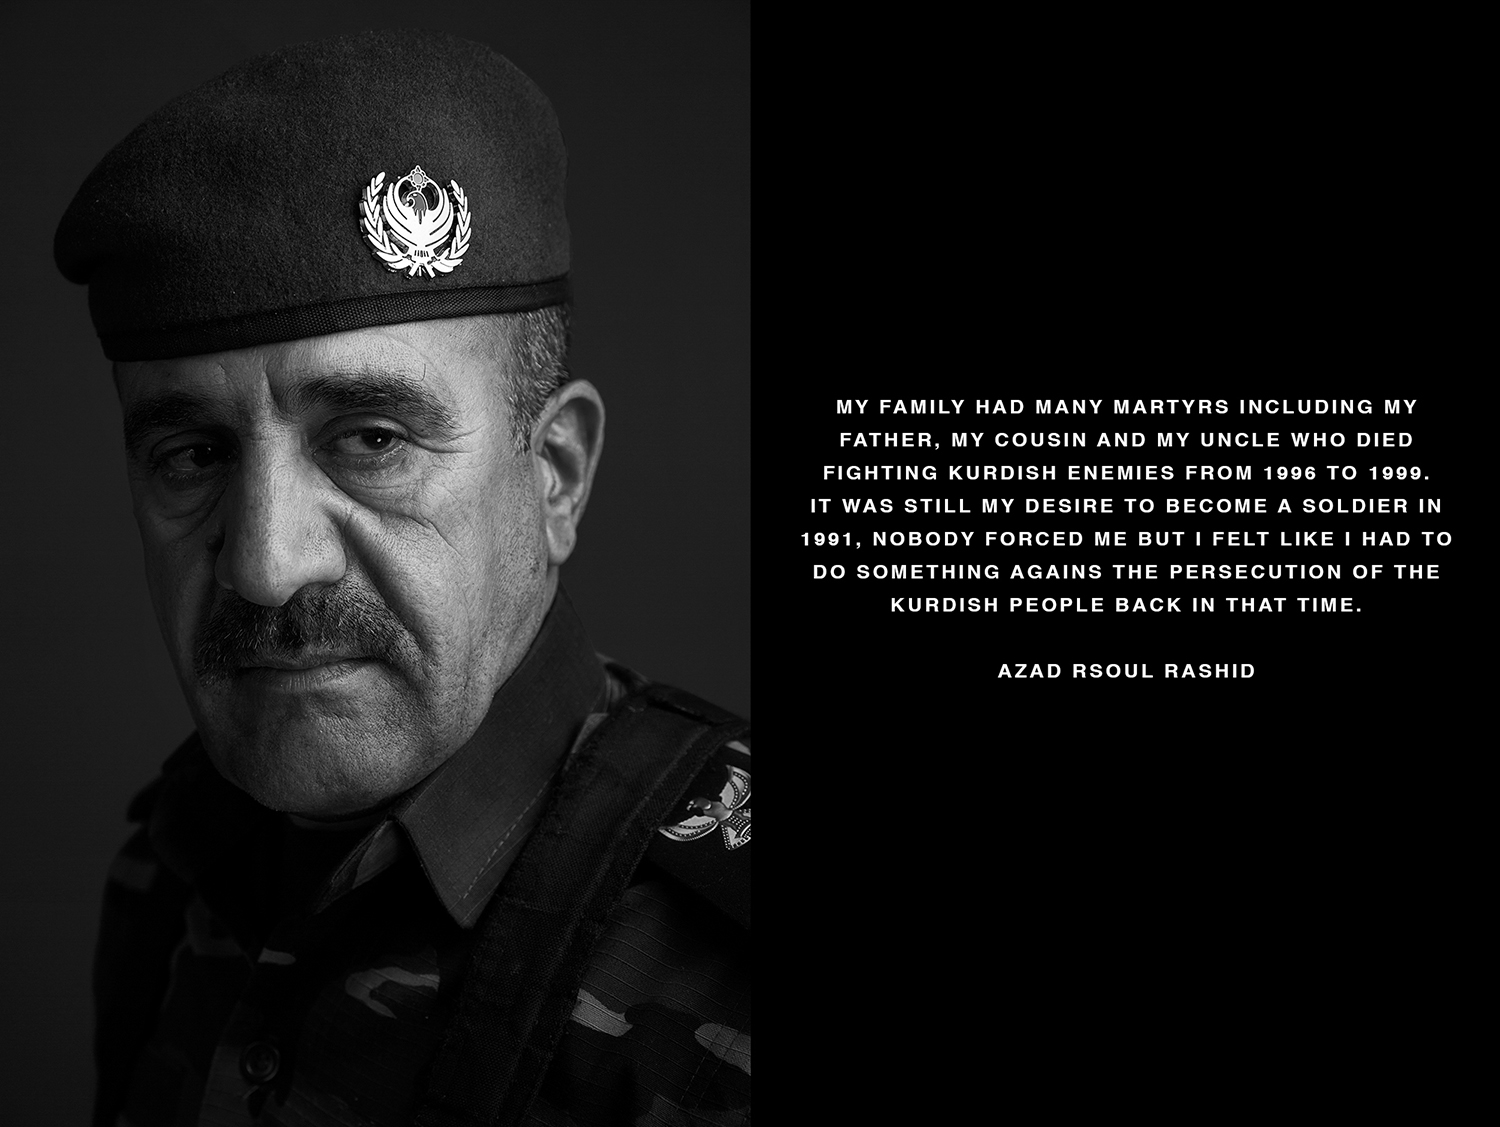 Portrait of a Peshmerga soldier